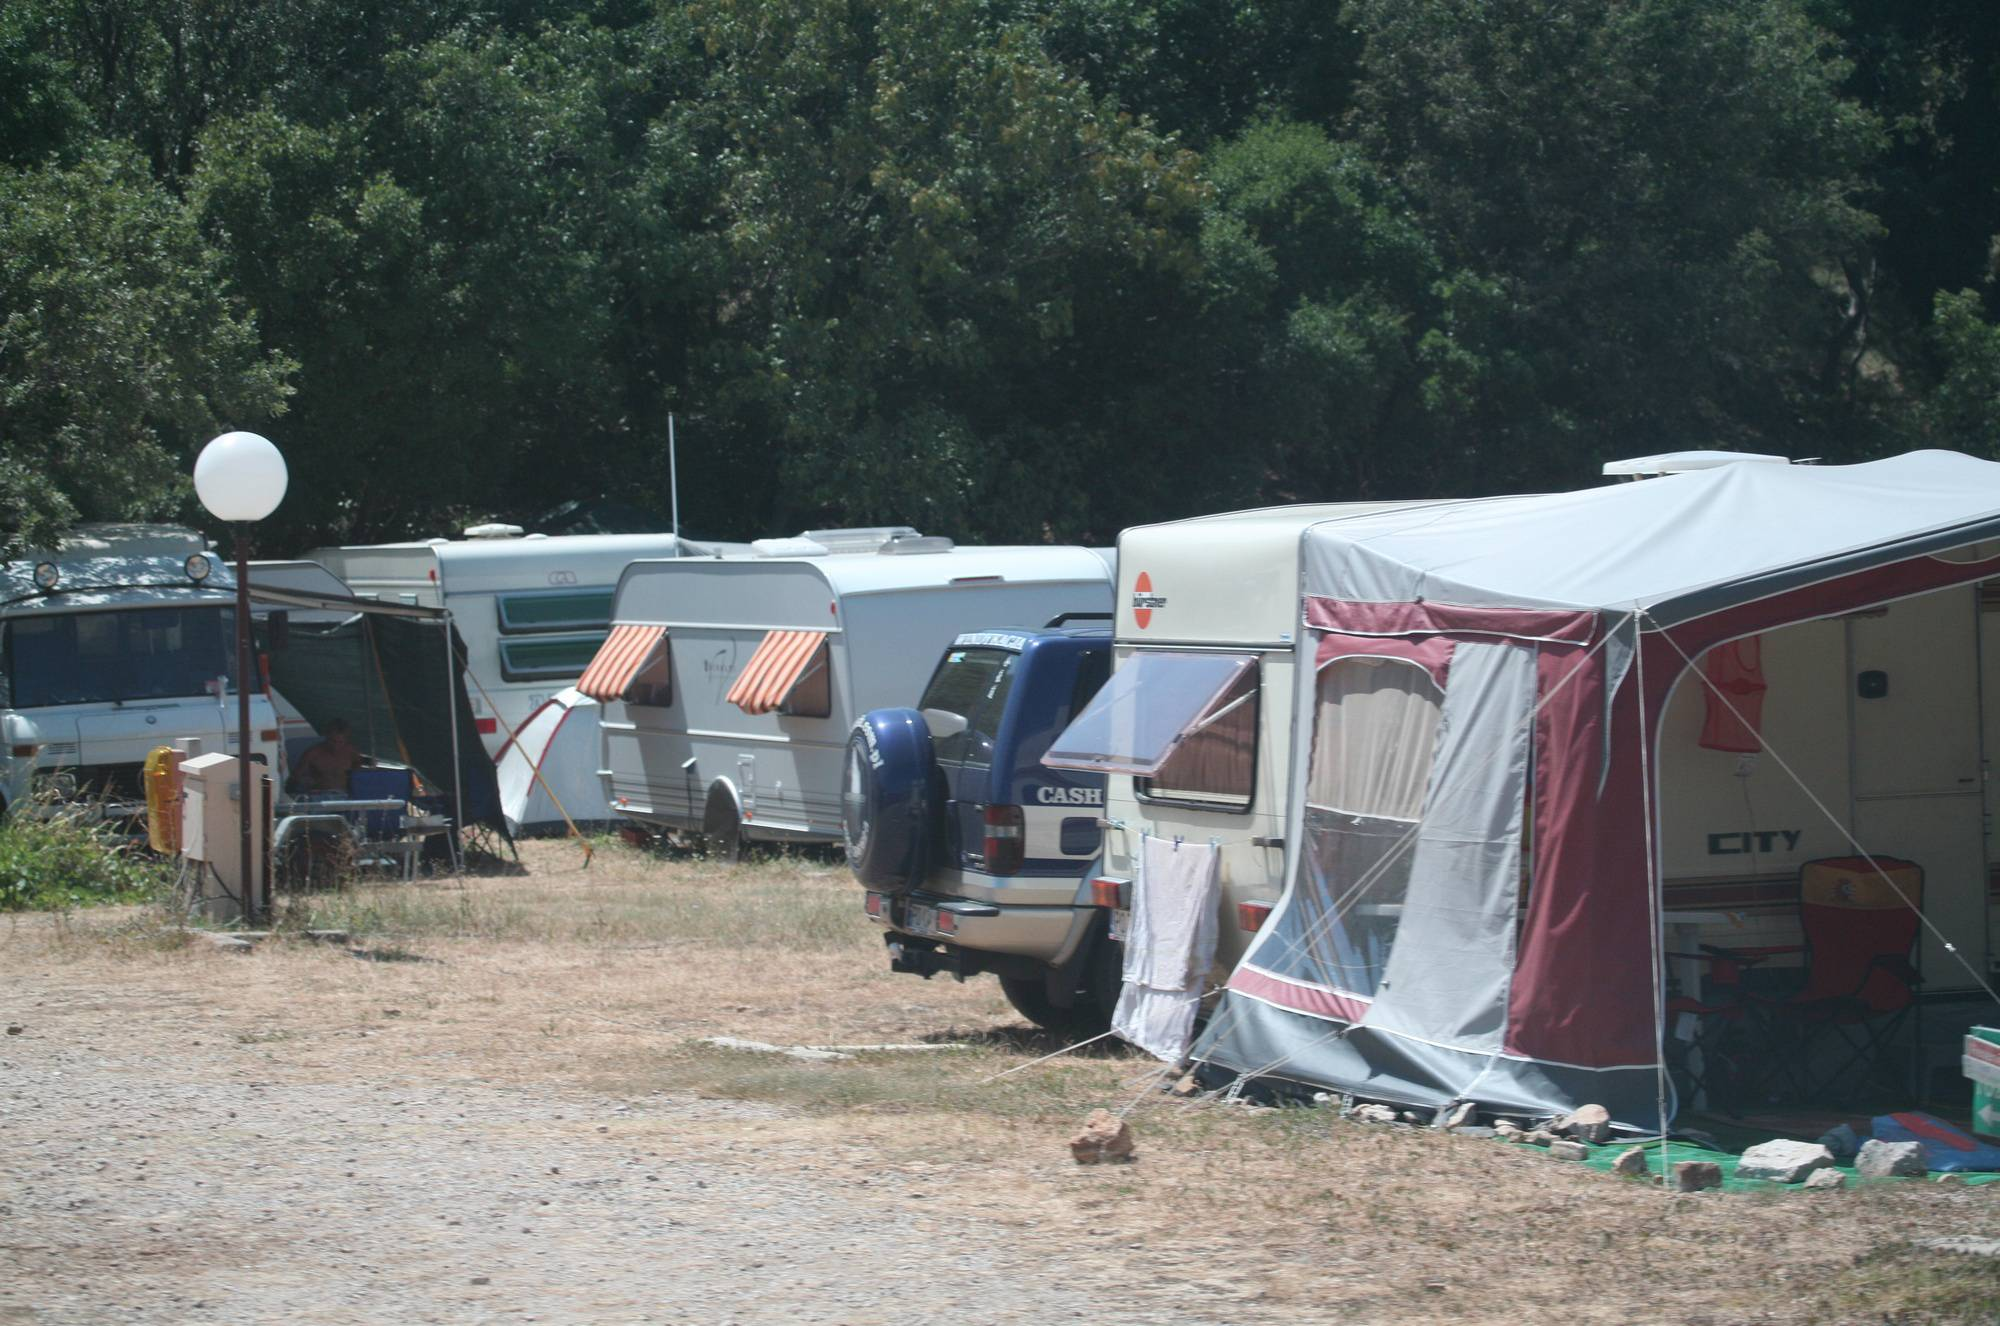 Bares Camping Scenery - 3